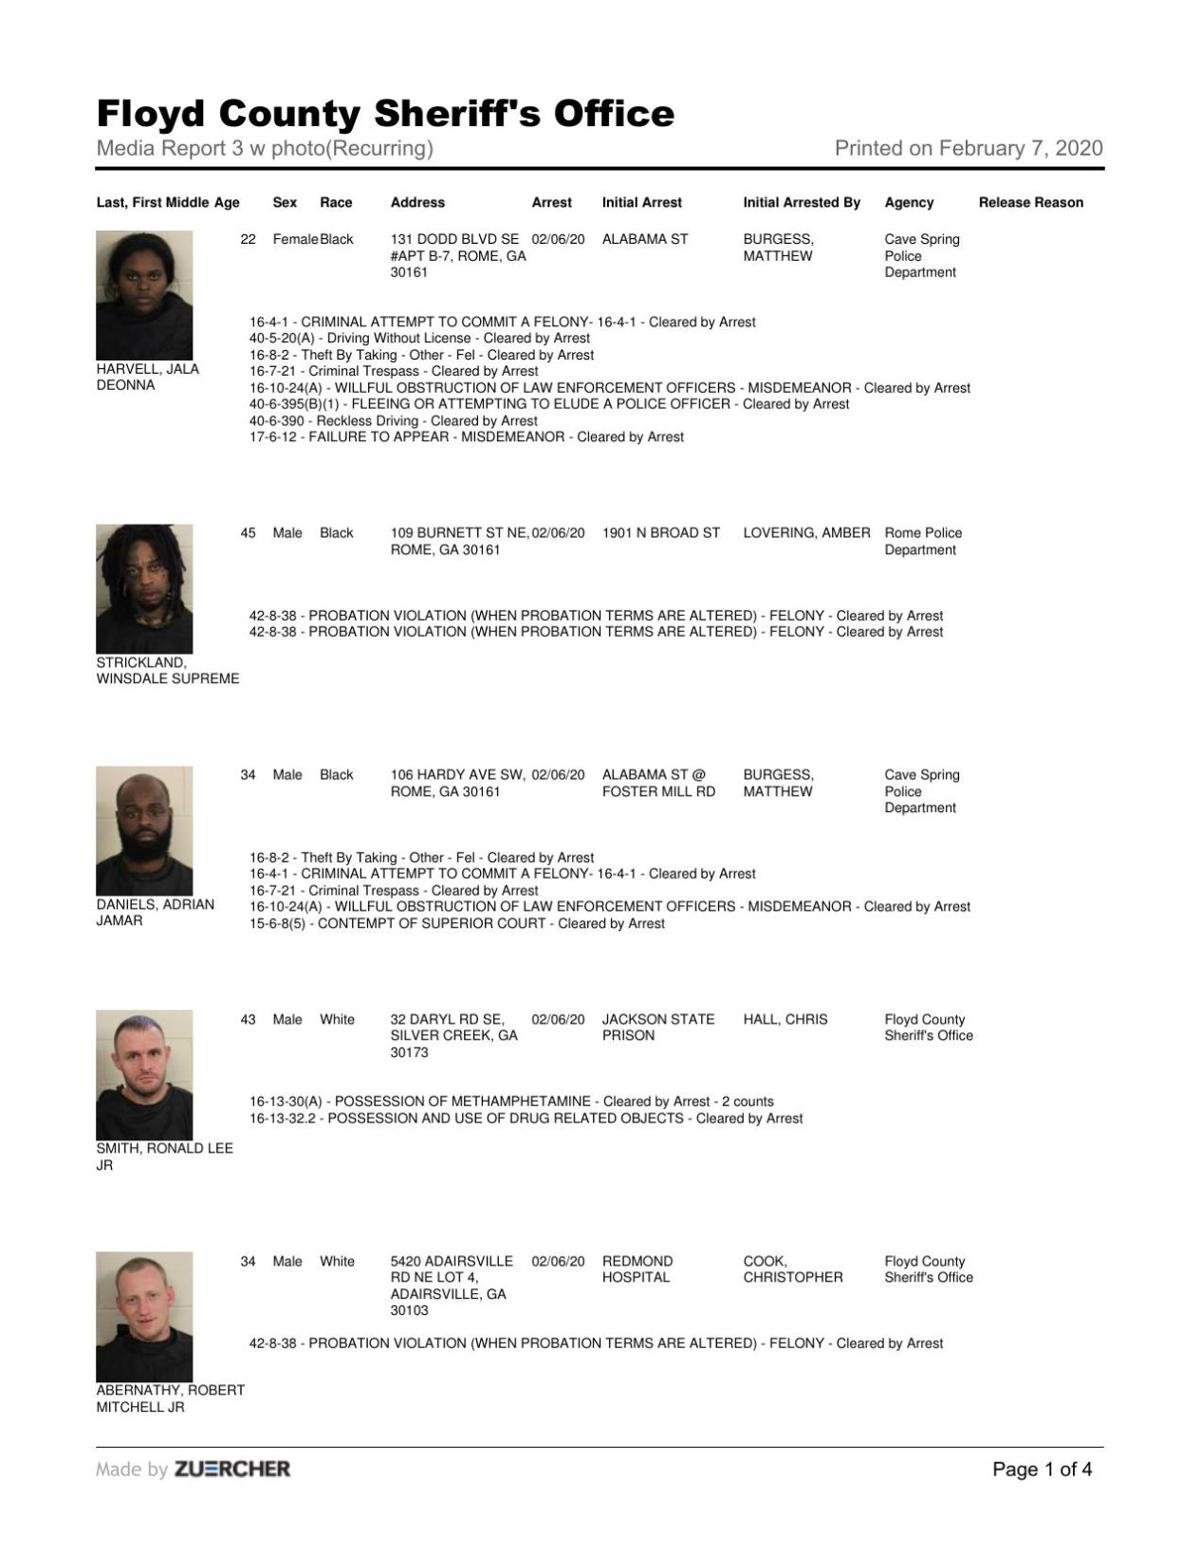 Floyd County Jail Report for Feb. 7, 2020, 8 a.m.